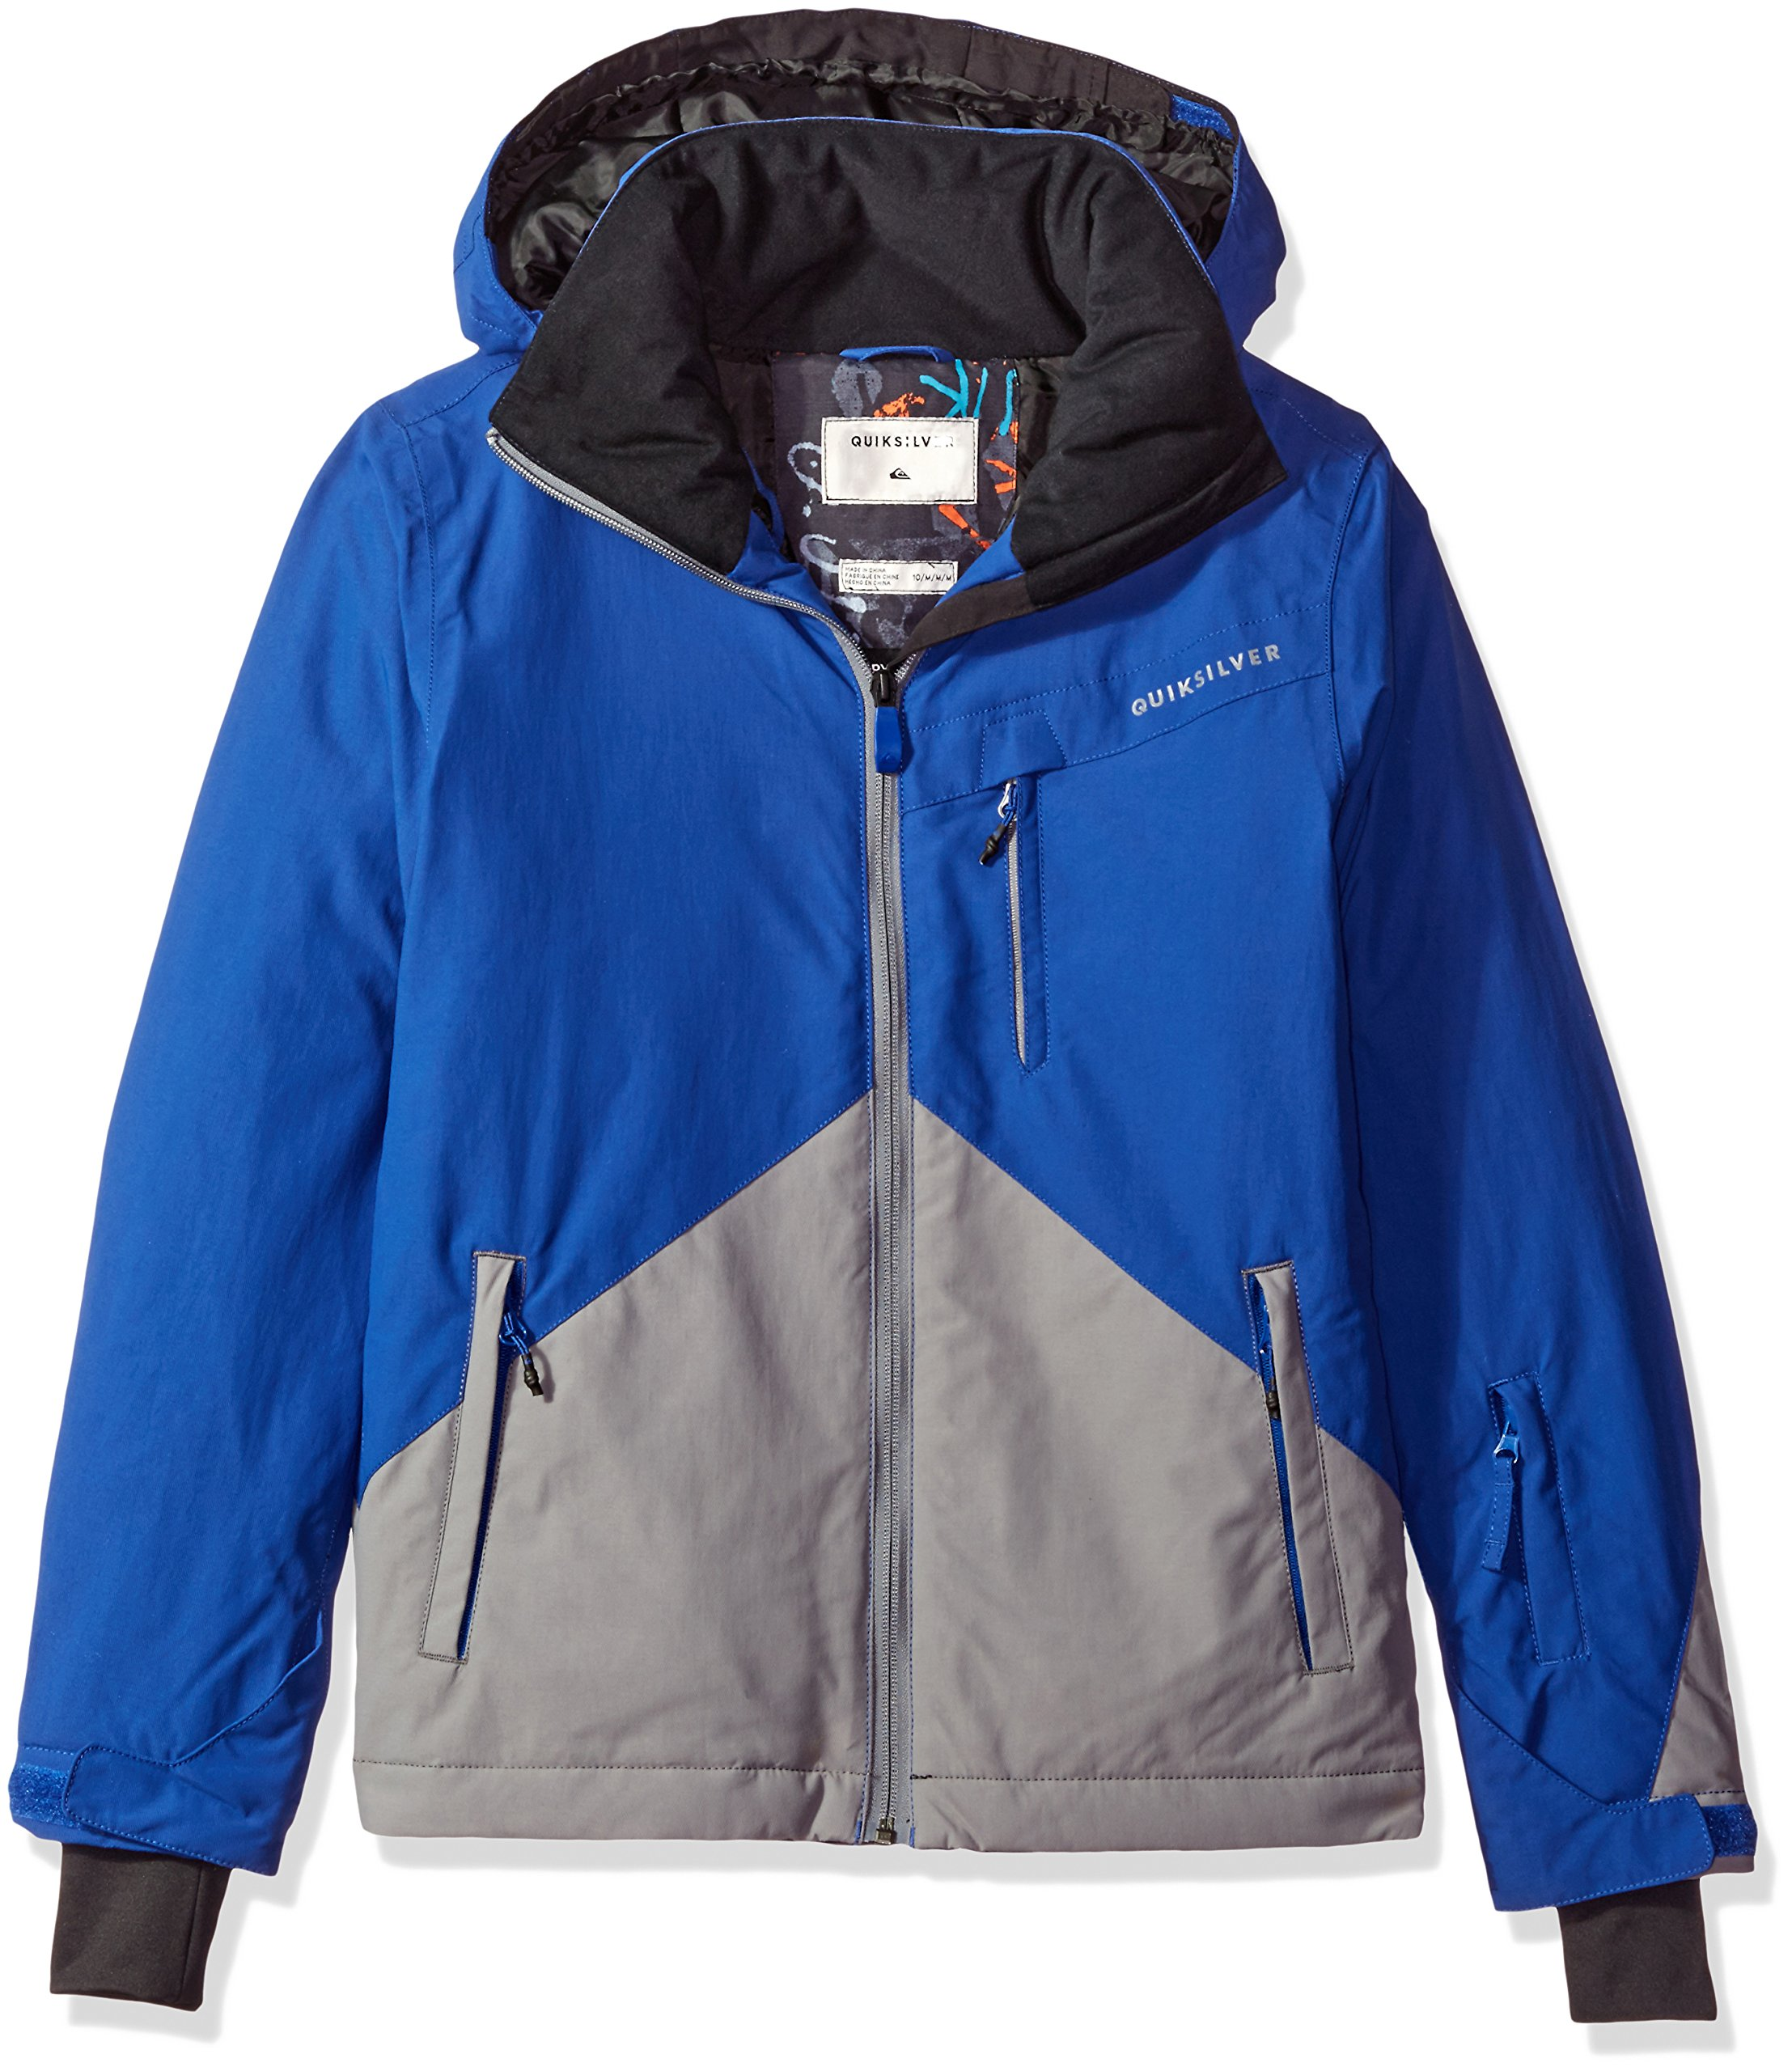 Quiksilver Big Boys' Mission Color Block Youth Snow Jacket, Sodalite Blue, 10/M by Quiksilver